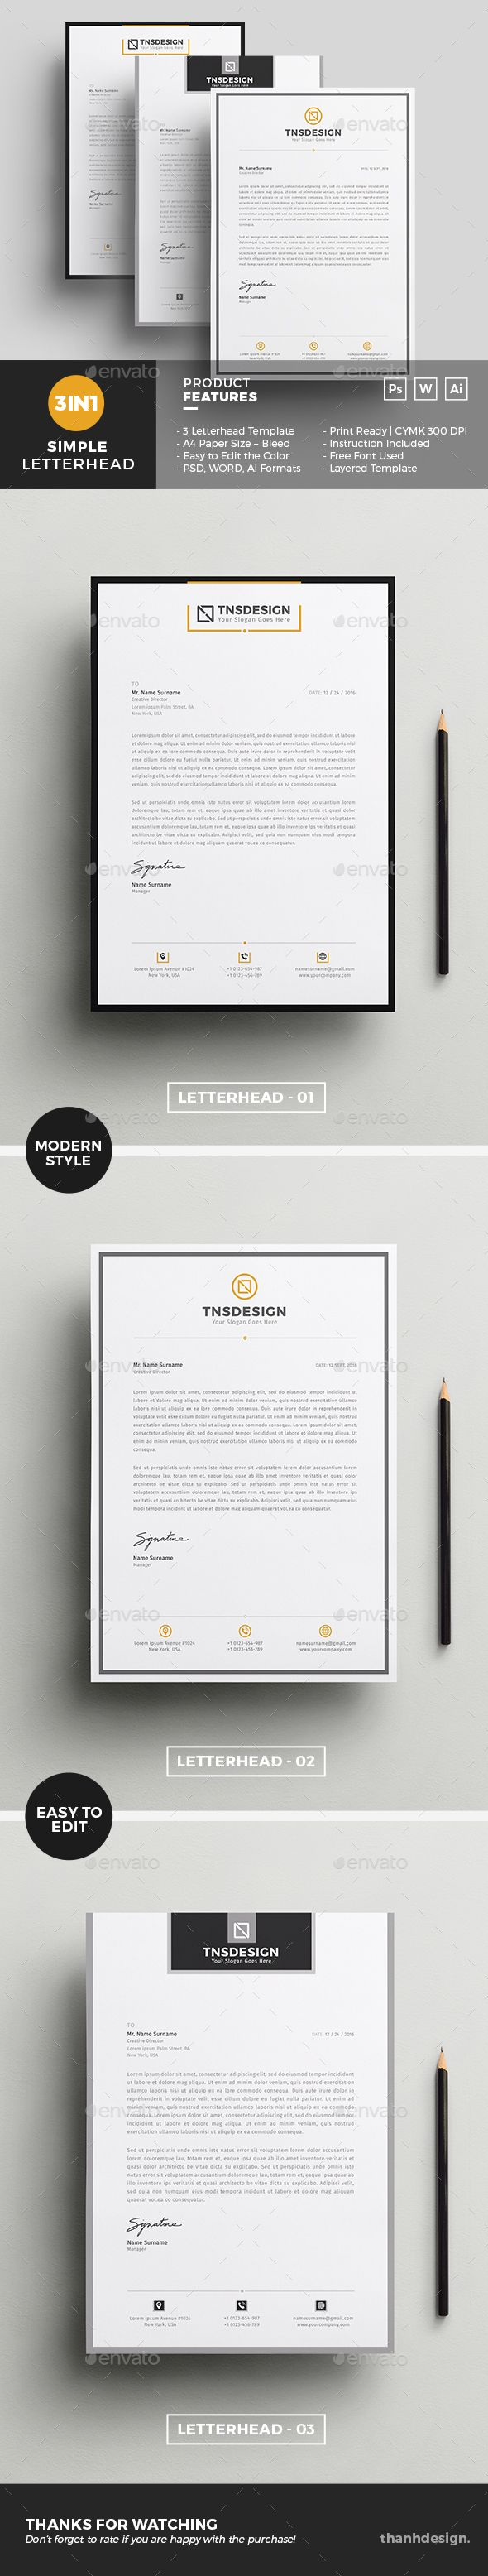 105 best letterhead template images on pinterest letterhead letterhead template spiritdancerdesigns Choice Image